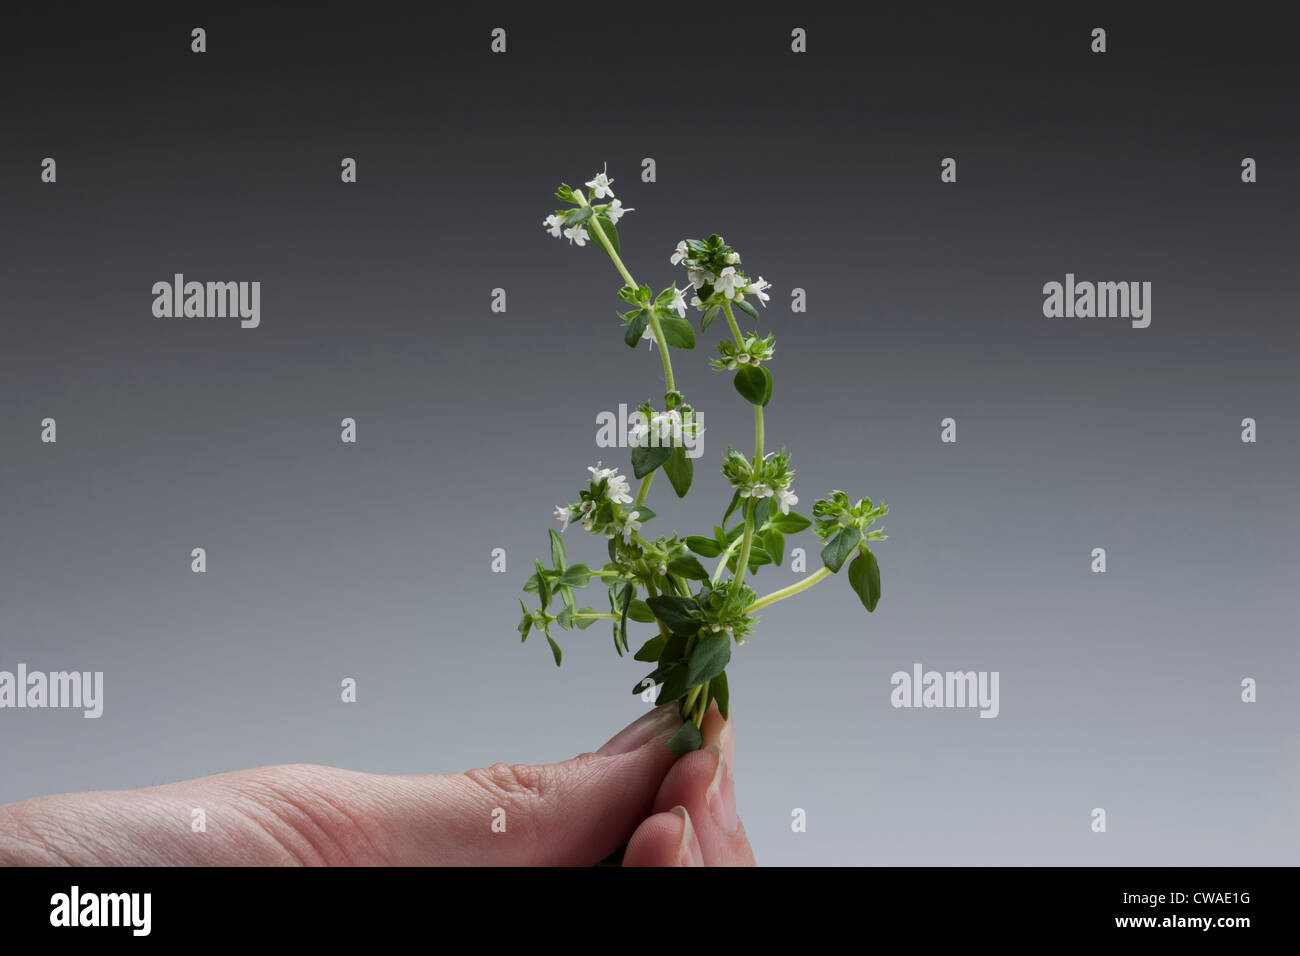 Person holding a sprig of thyme - Stock Image